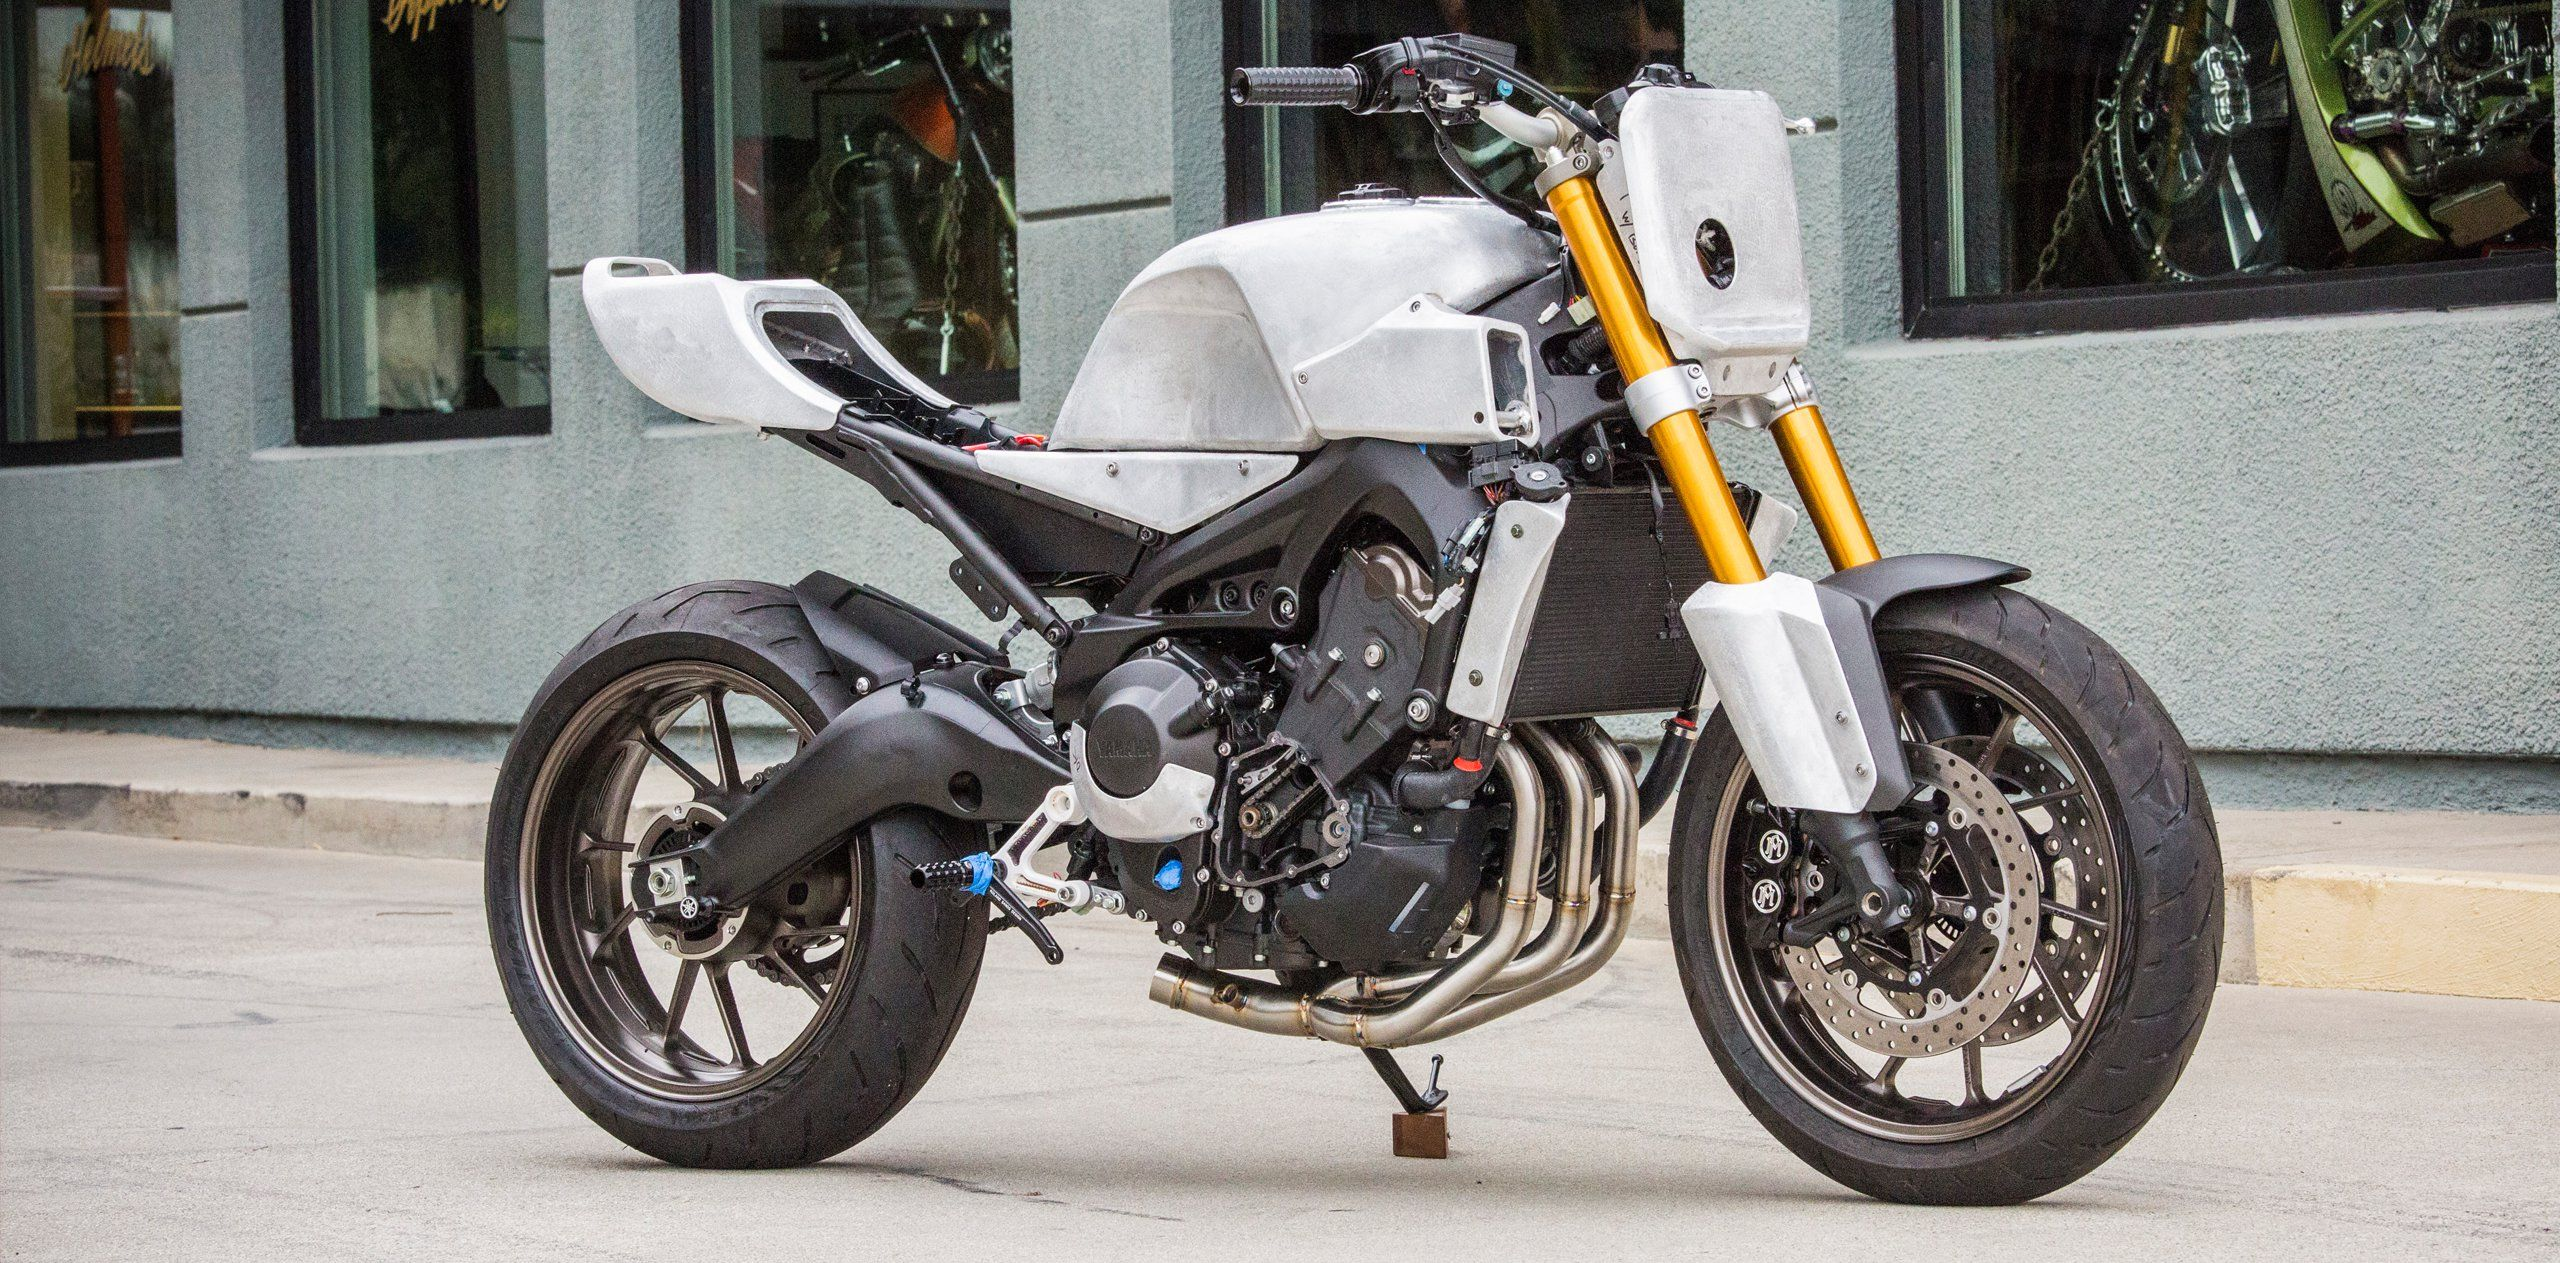 faster wasp: yamaha fz-09roland sands | roland sands and cafes